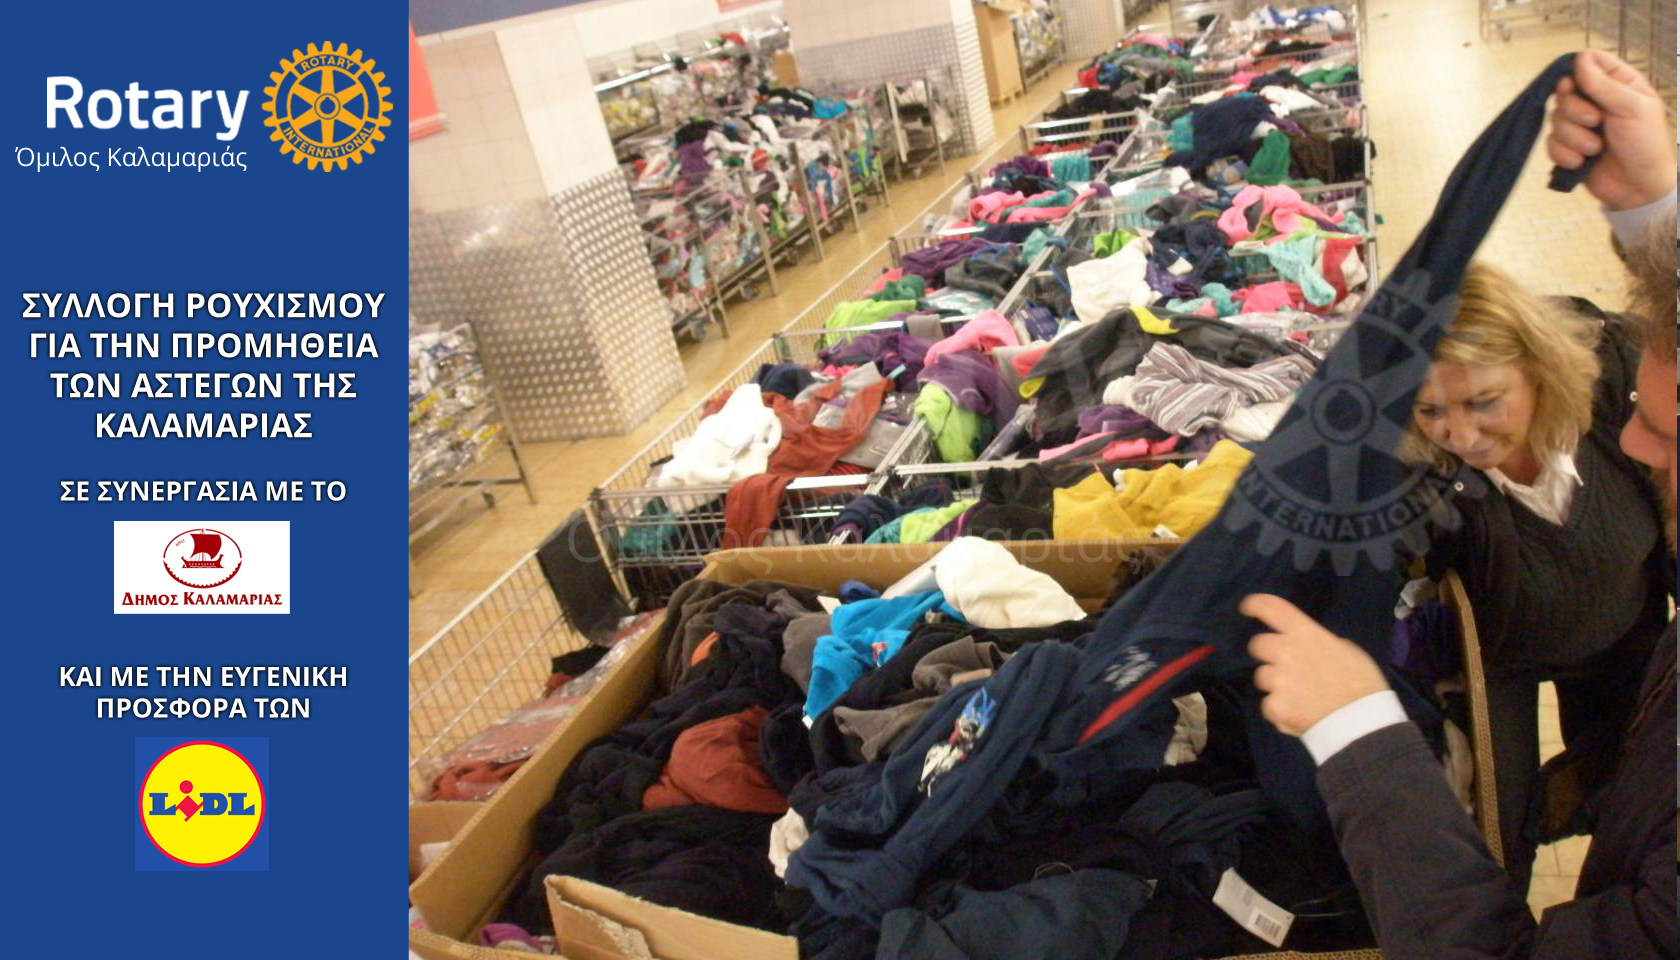 Rotary-Club-Kalamaria-and-Lidl-give-clothes-for-homeles-005